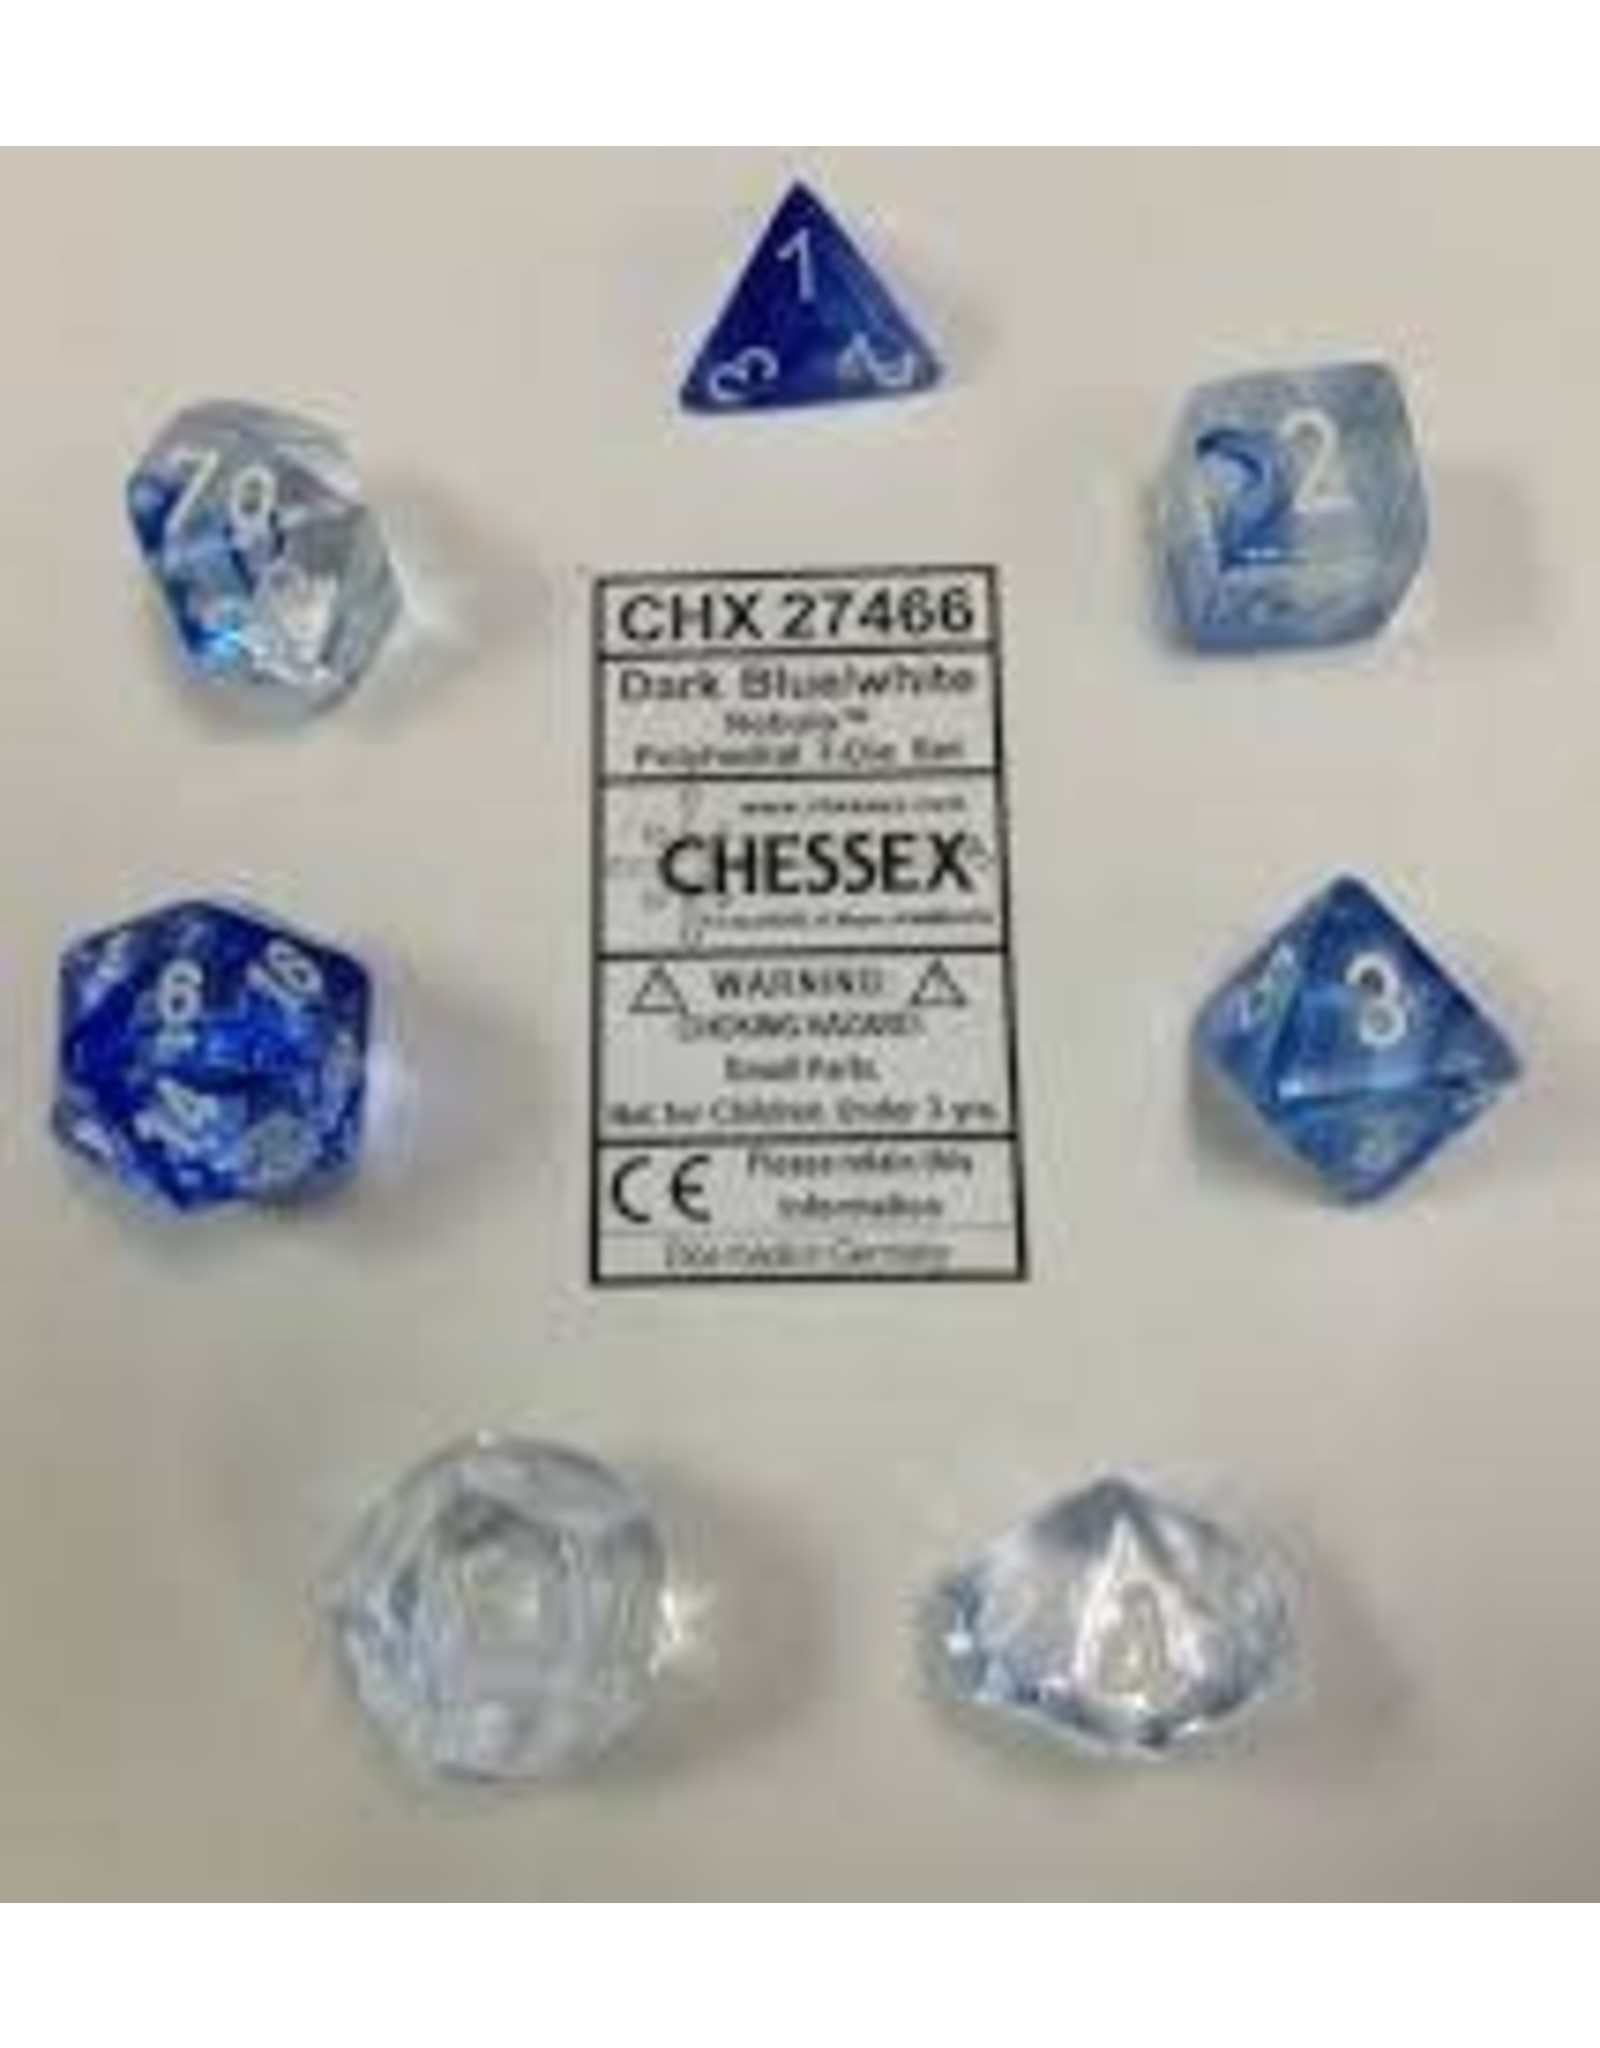 CHESSEX CHX 27466 7 PC POLY DICE SET NEBULA DARK BLUE W/ WHITE